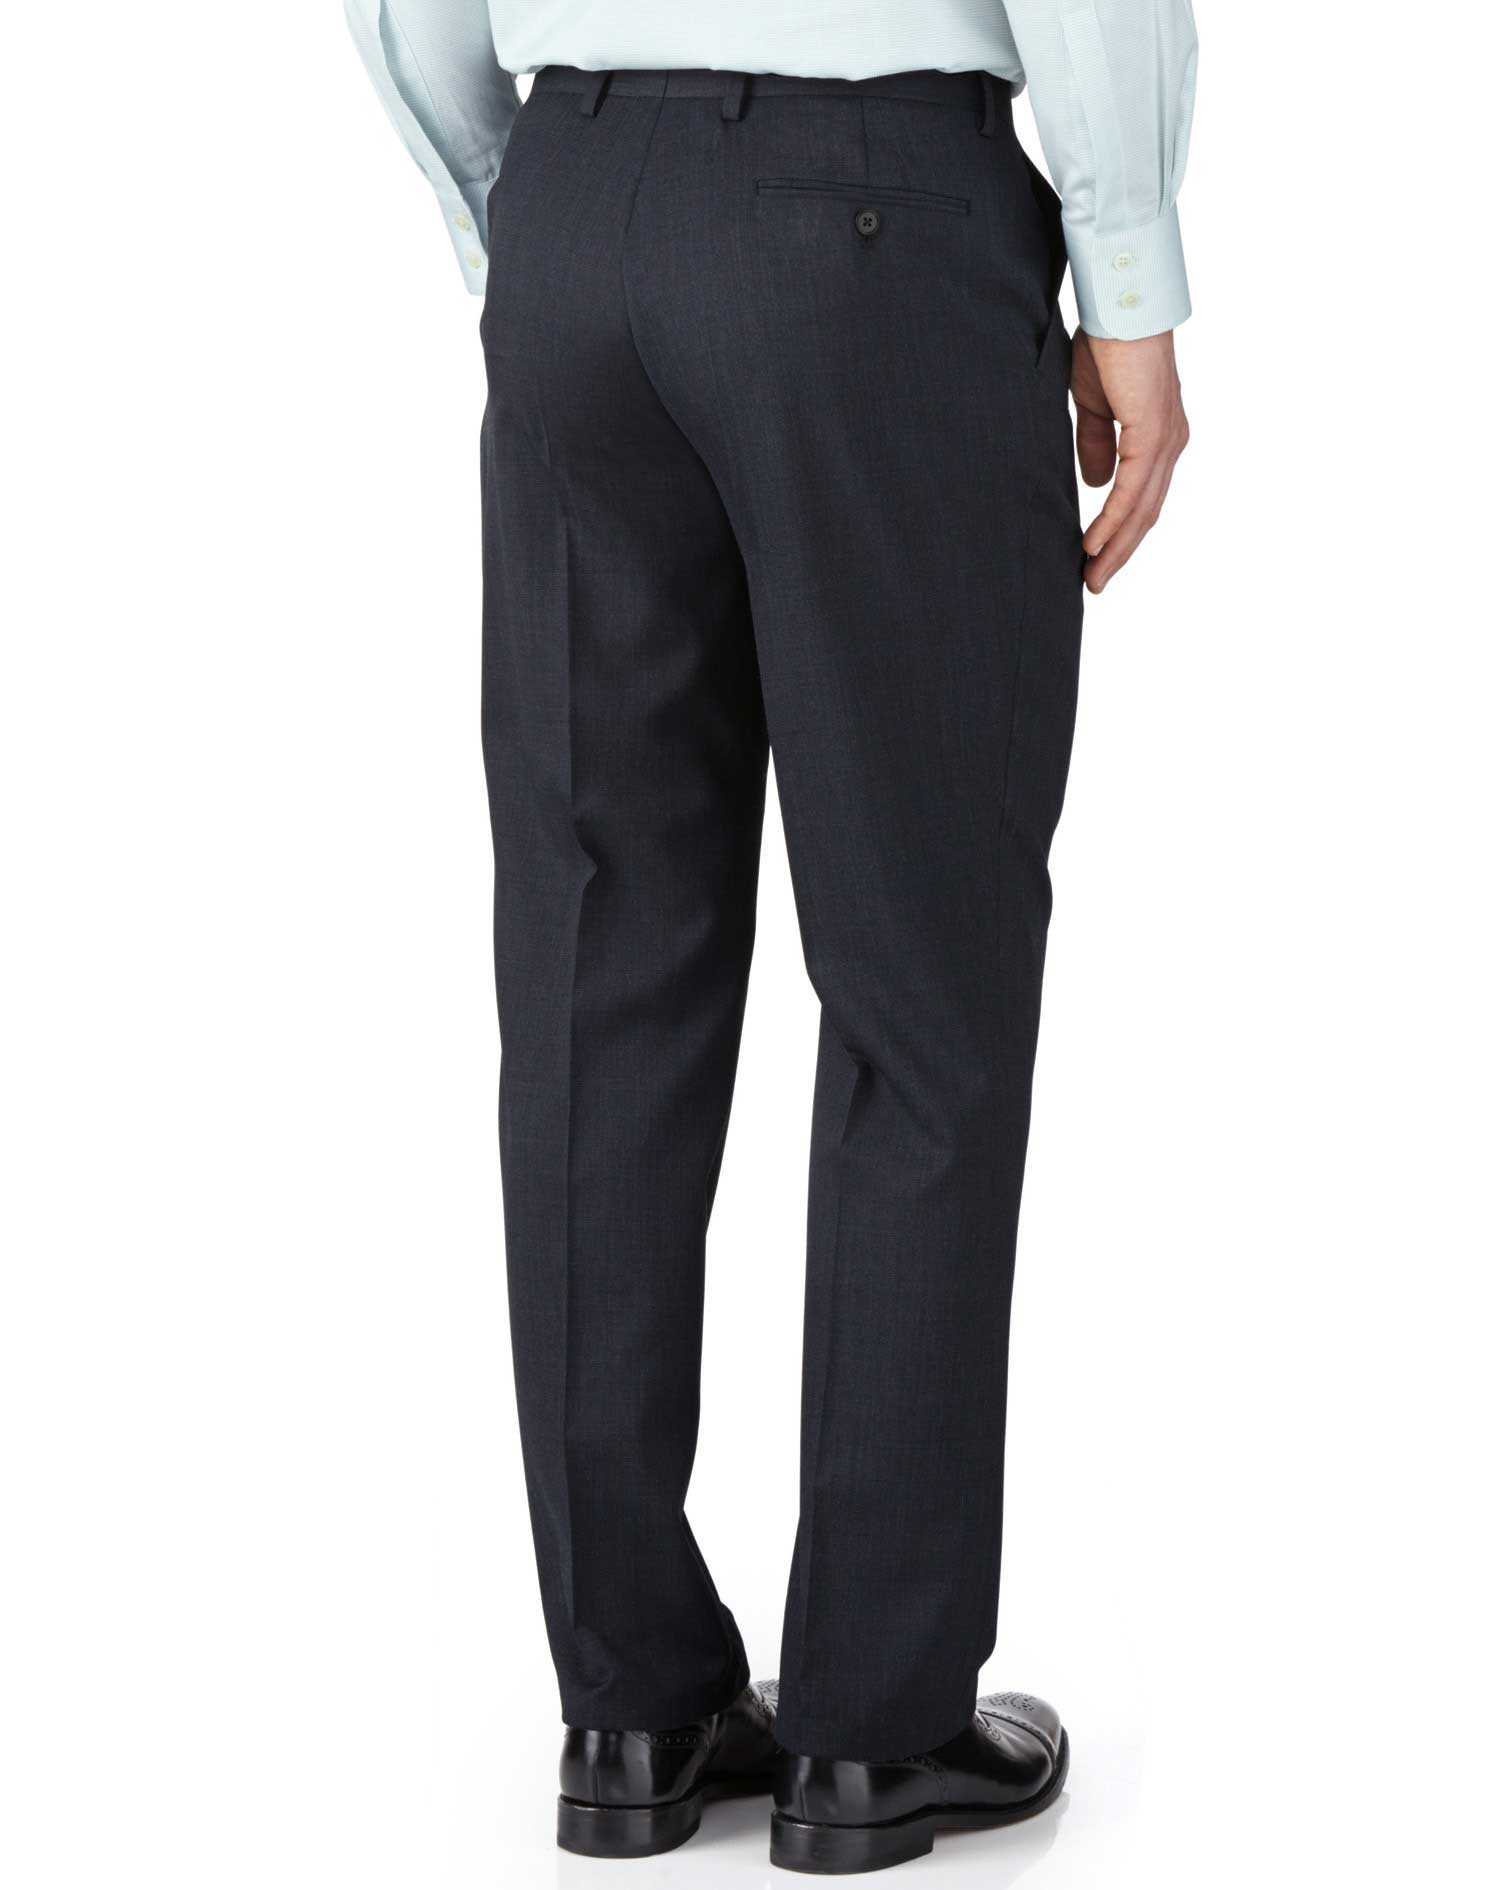 Navy classic fit end-on-end business suit pants